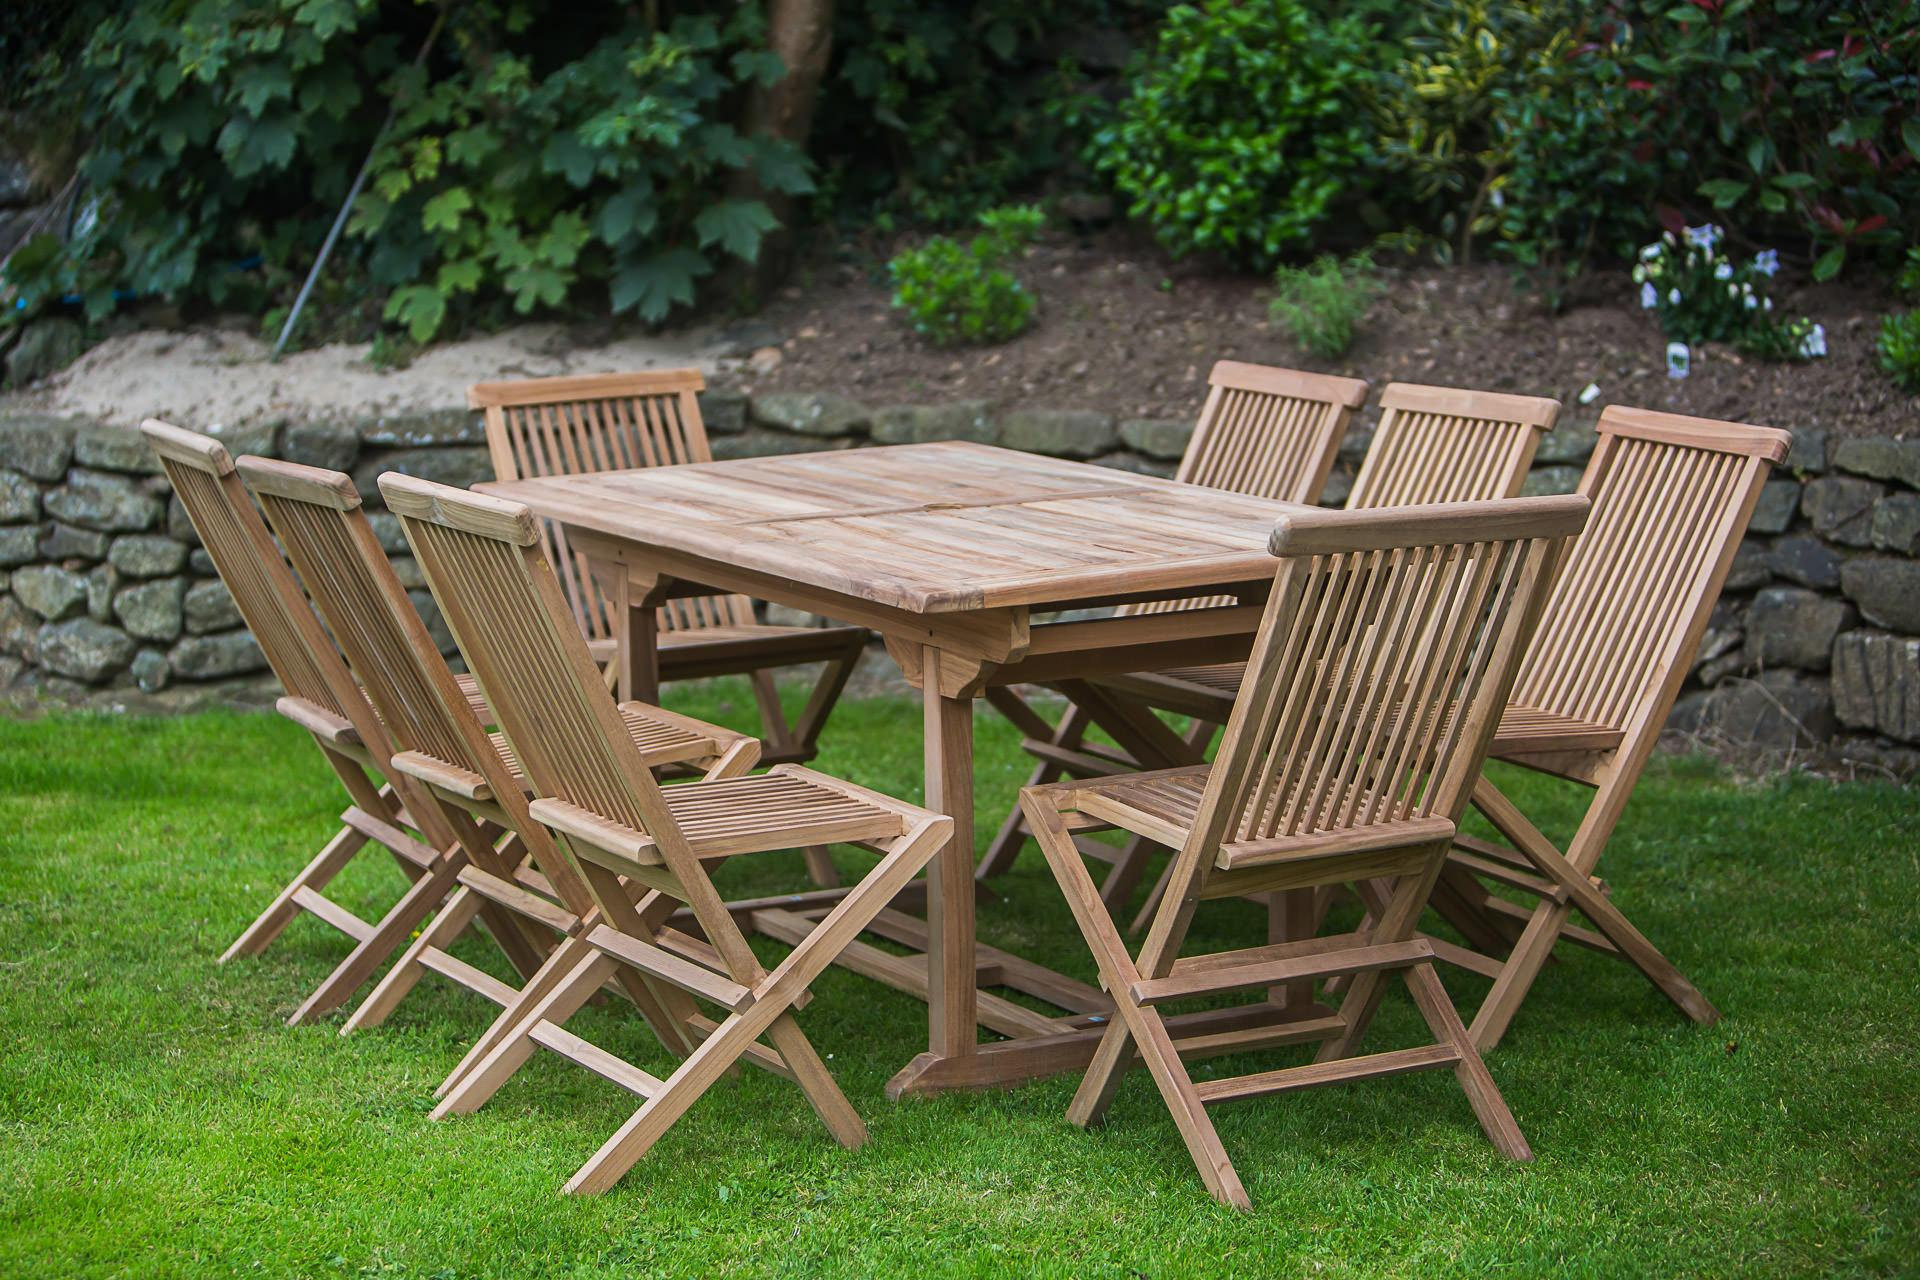 8 Seater Folding Garden Patio Sets